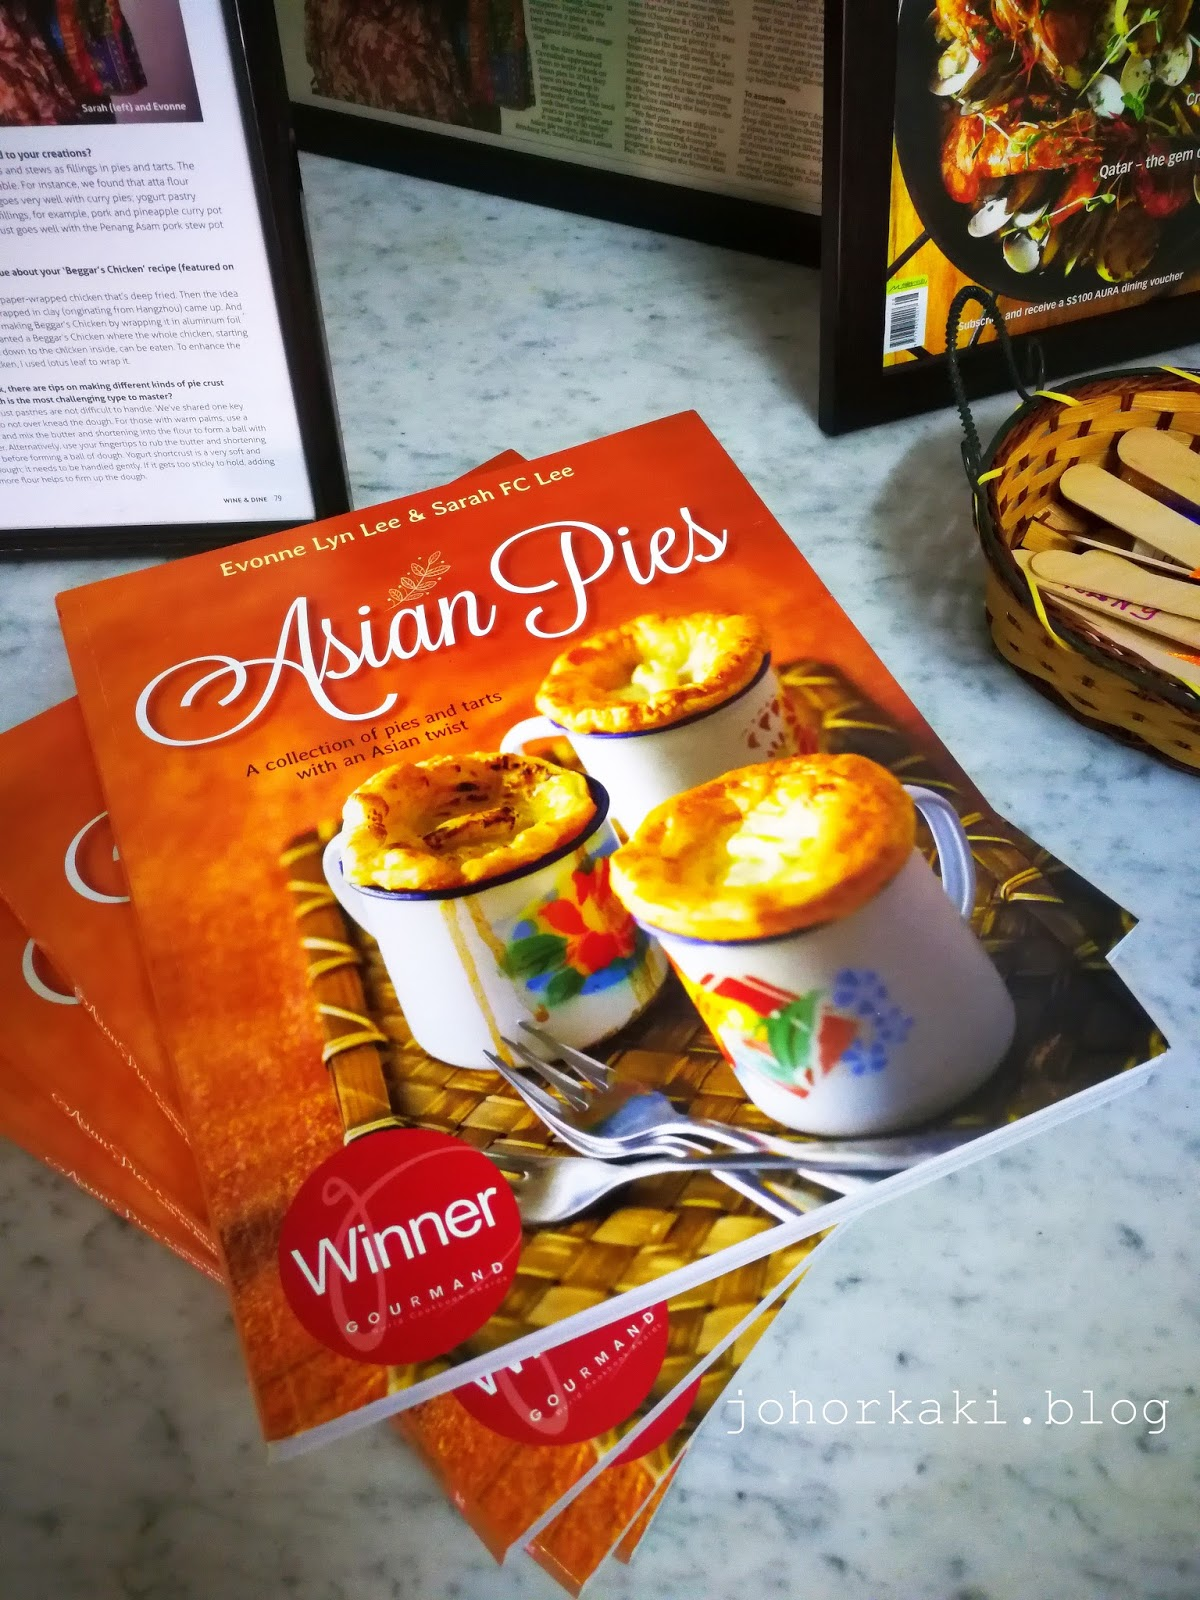 asian pies by evonne sarah best asian cuisine book in